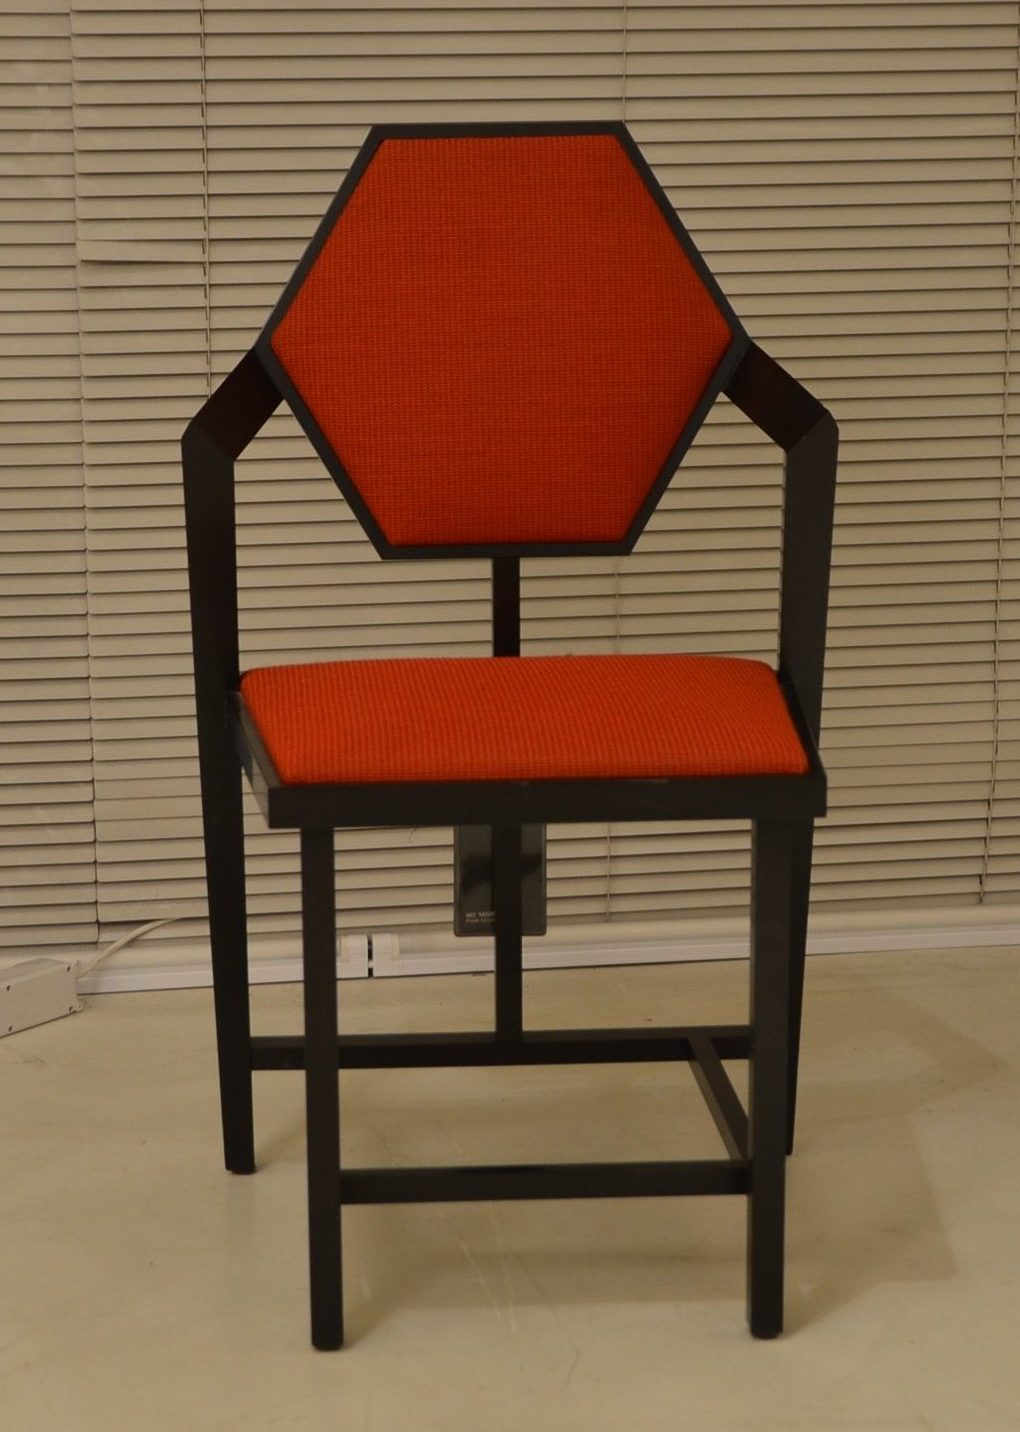 MIDWAY 1 Frank Lloyd Wright Cassina original chair design Made in Italy